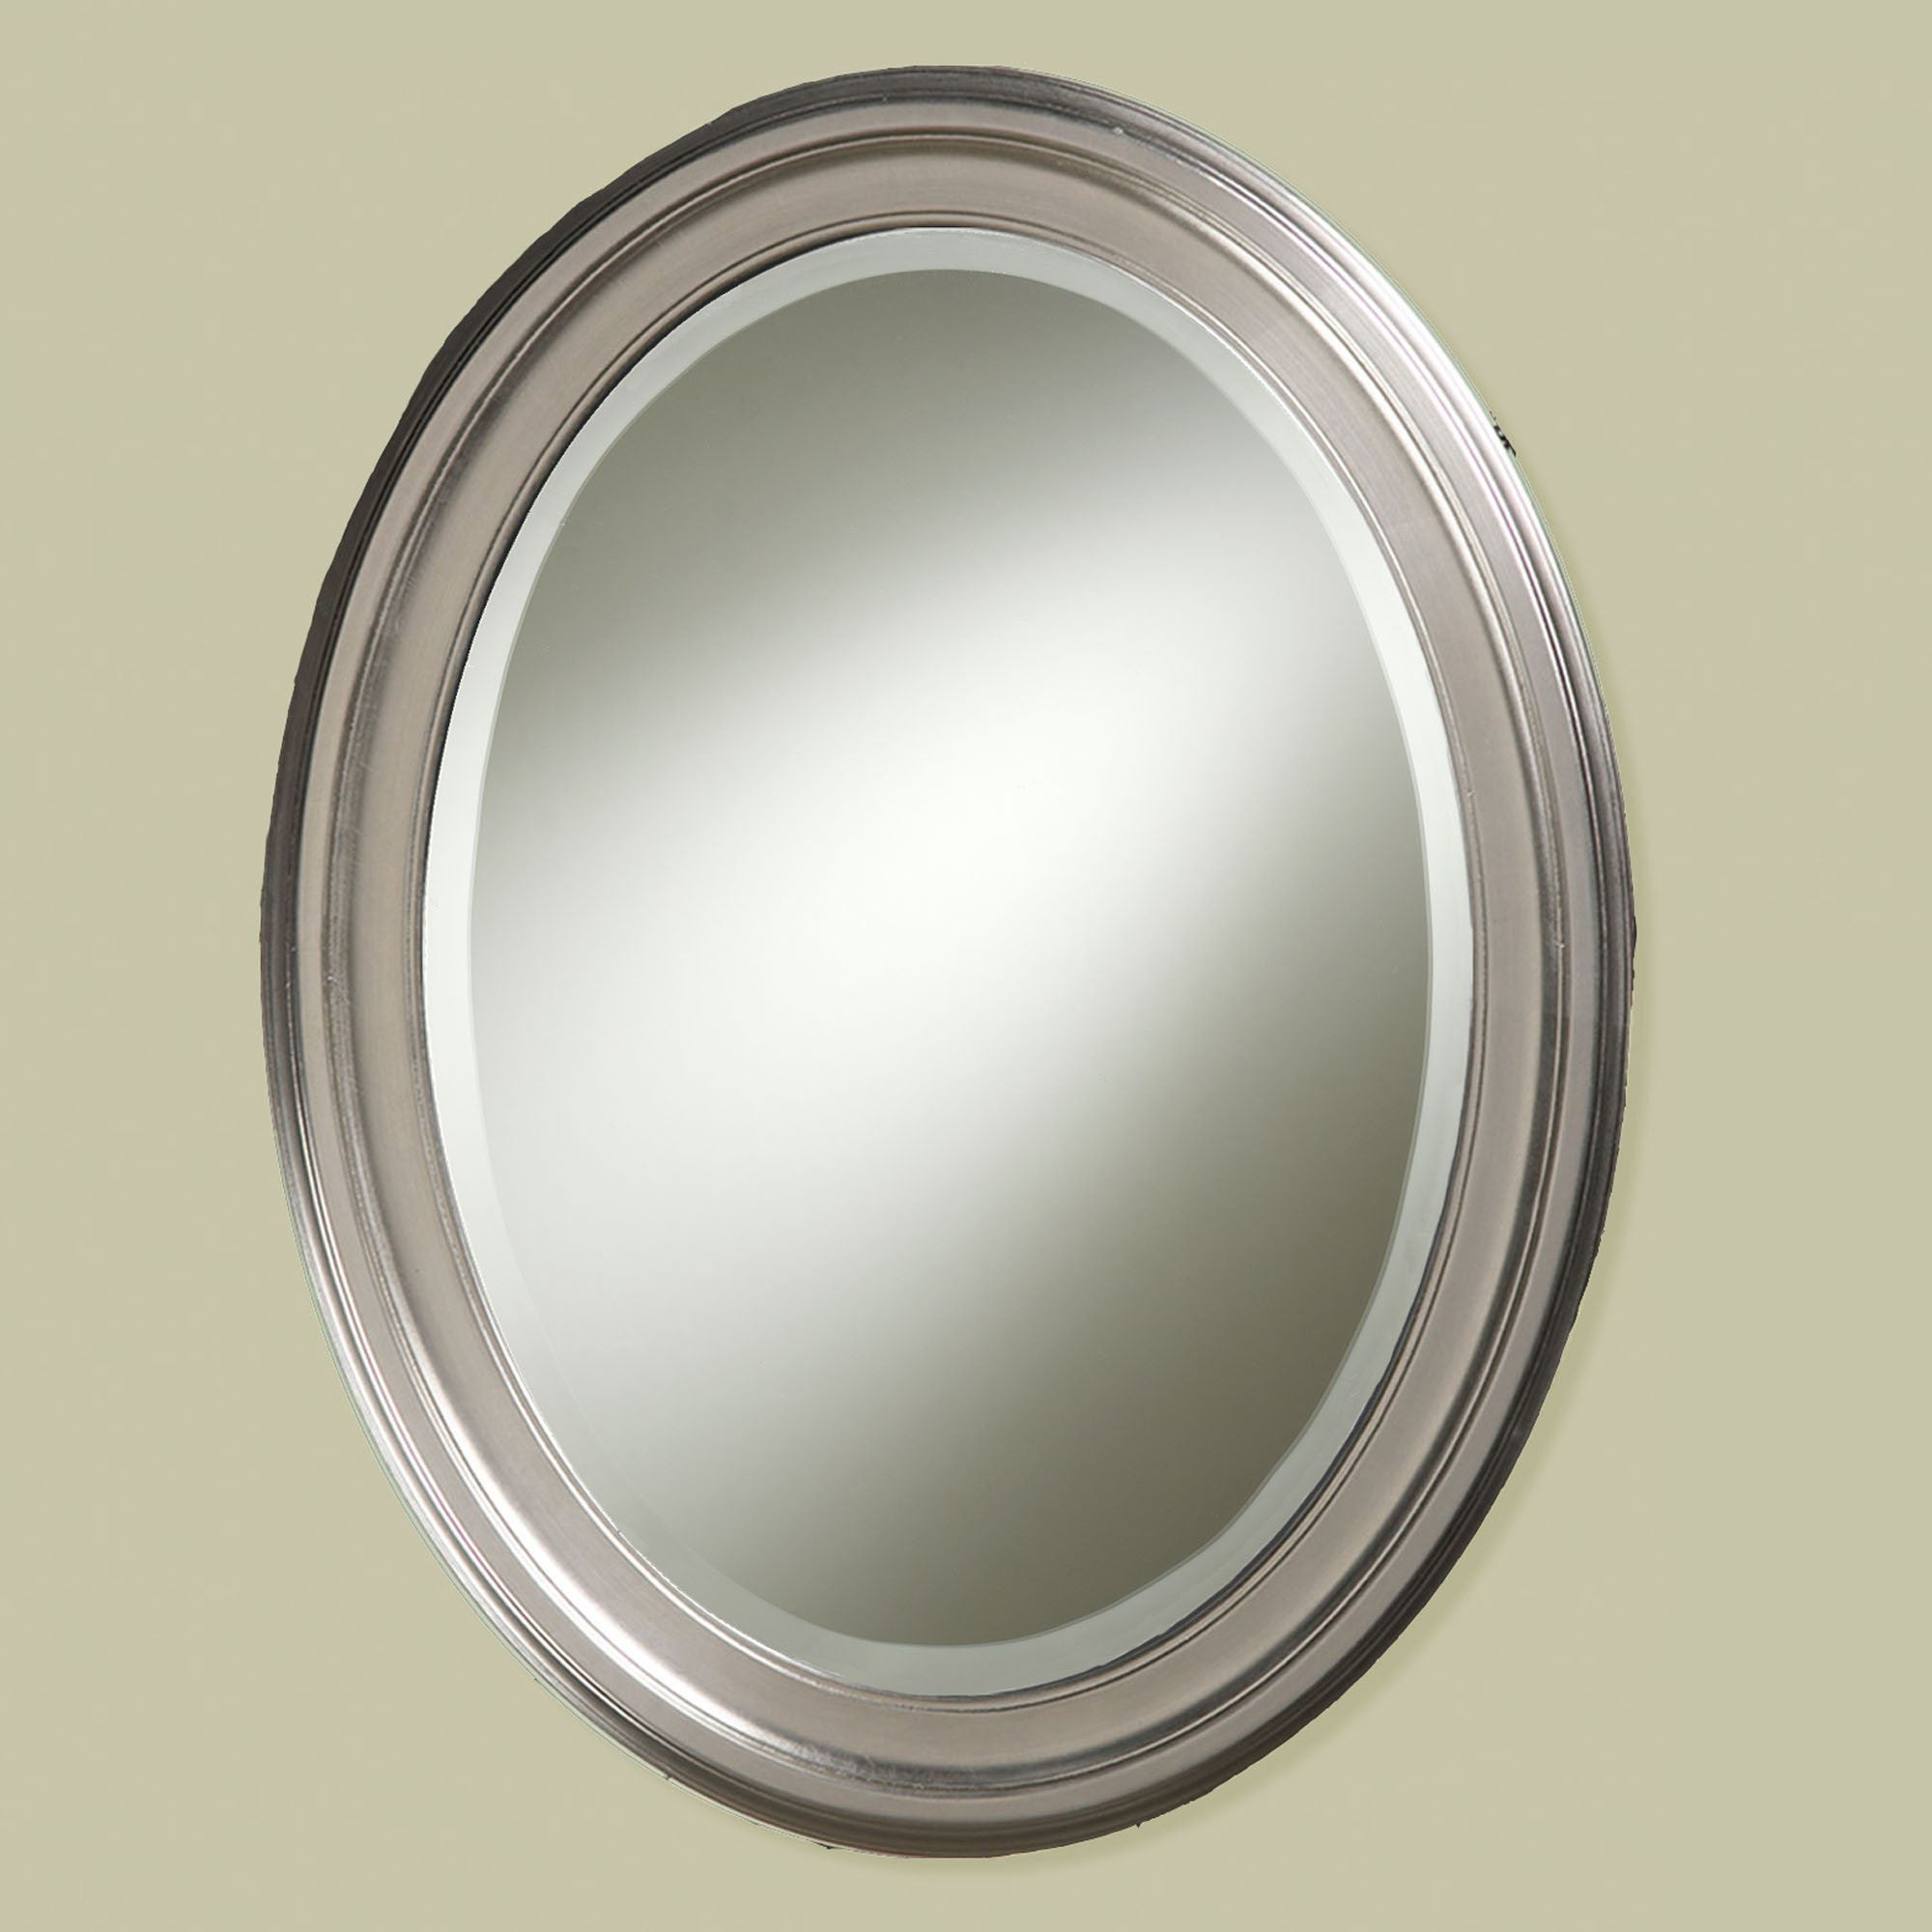 Suddenly Brushed Nickel Wall Mirror Loree Fini #16196 Within Hogge Modern Brushed Nickel Large Frame Wall Mirrors (View 15 of 20)